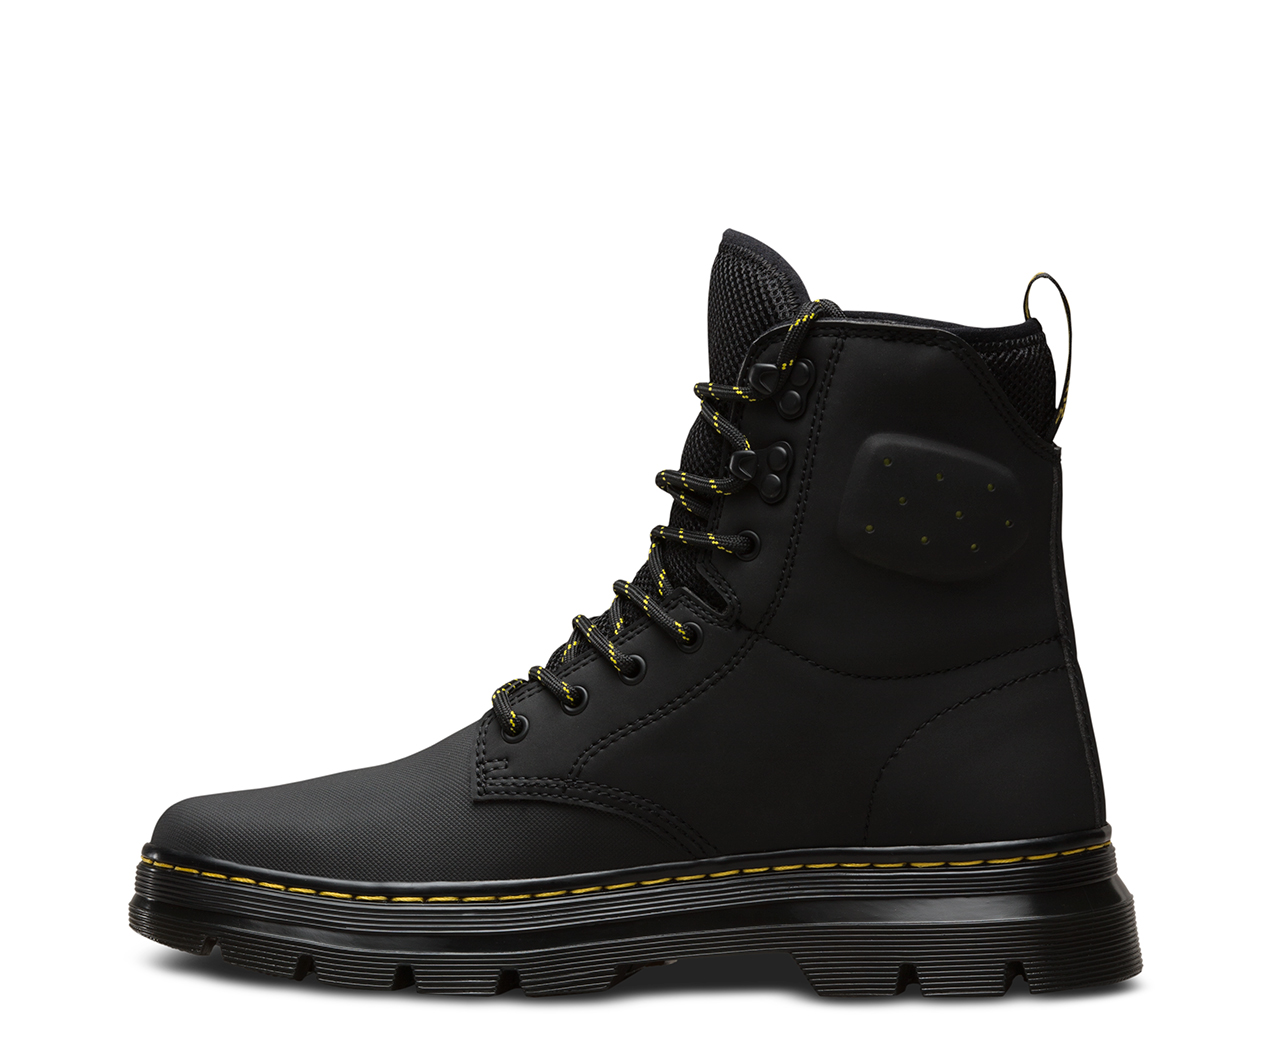 On Hot Sale Cheap For Sale Unisex Adults Quinton Black Ajax+Synthetic Nubuck Boots Dr. Martens Discount Visa Payment wa4t2vku